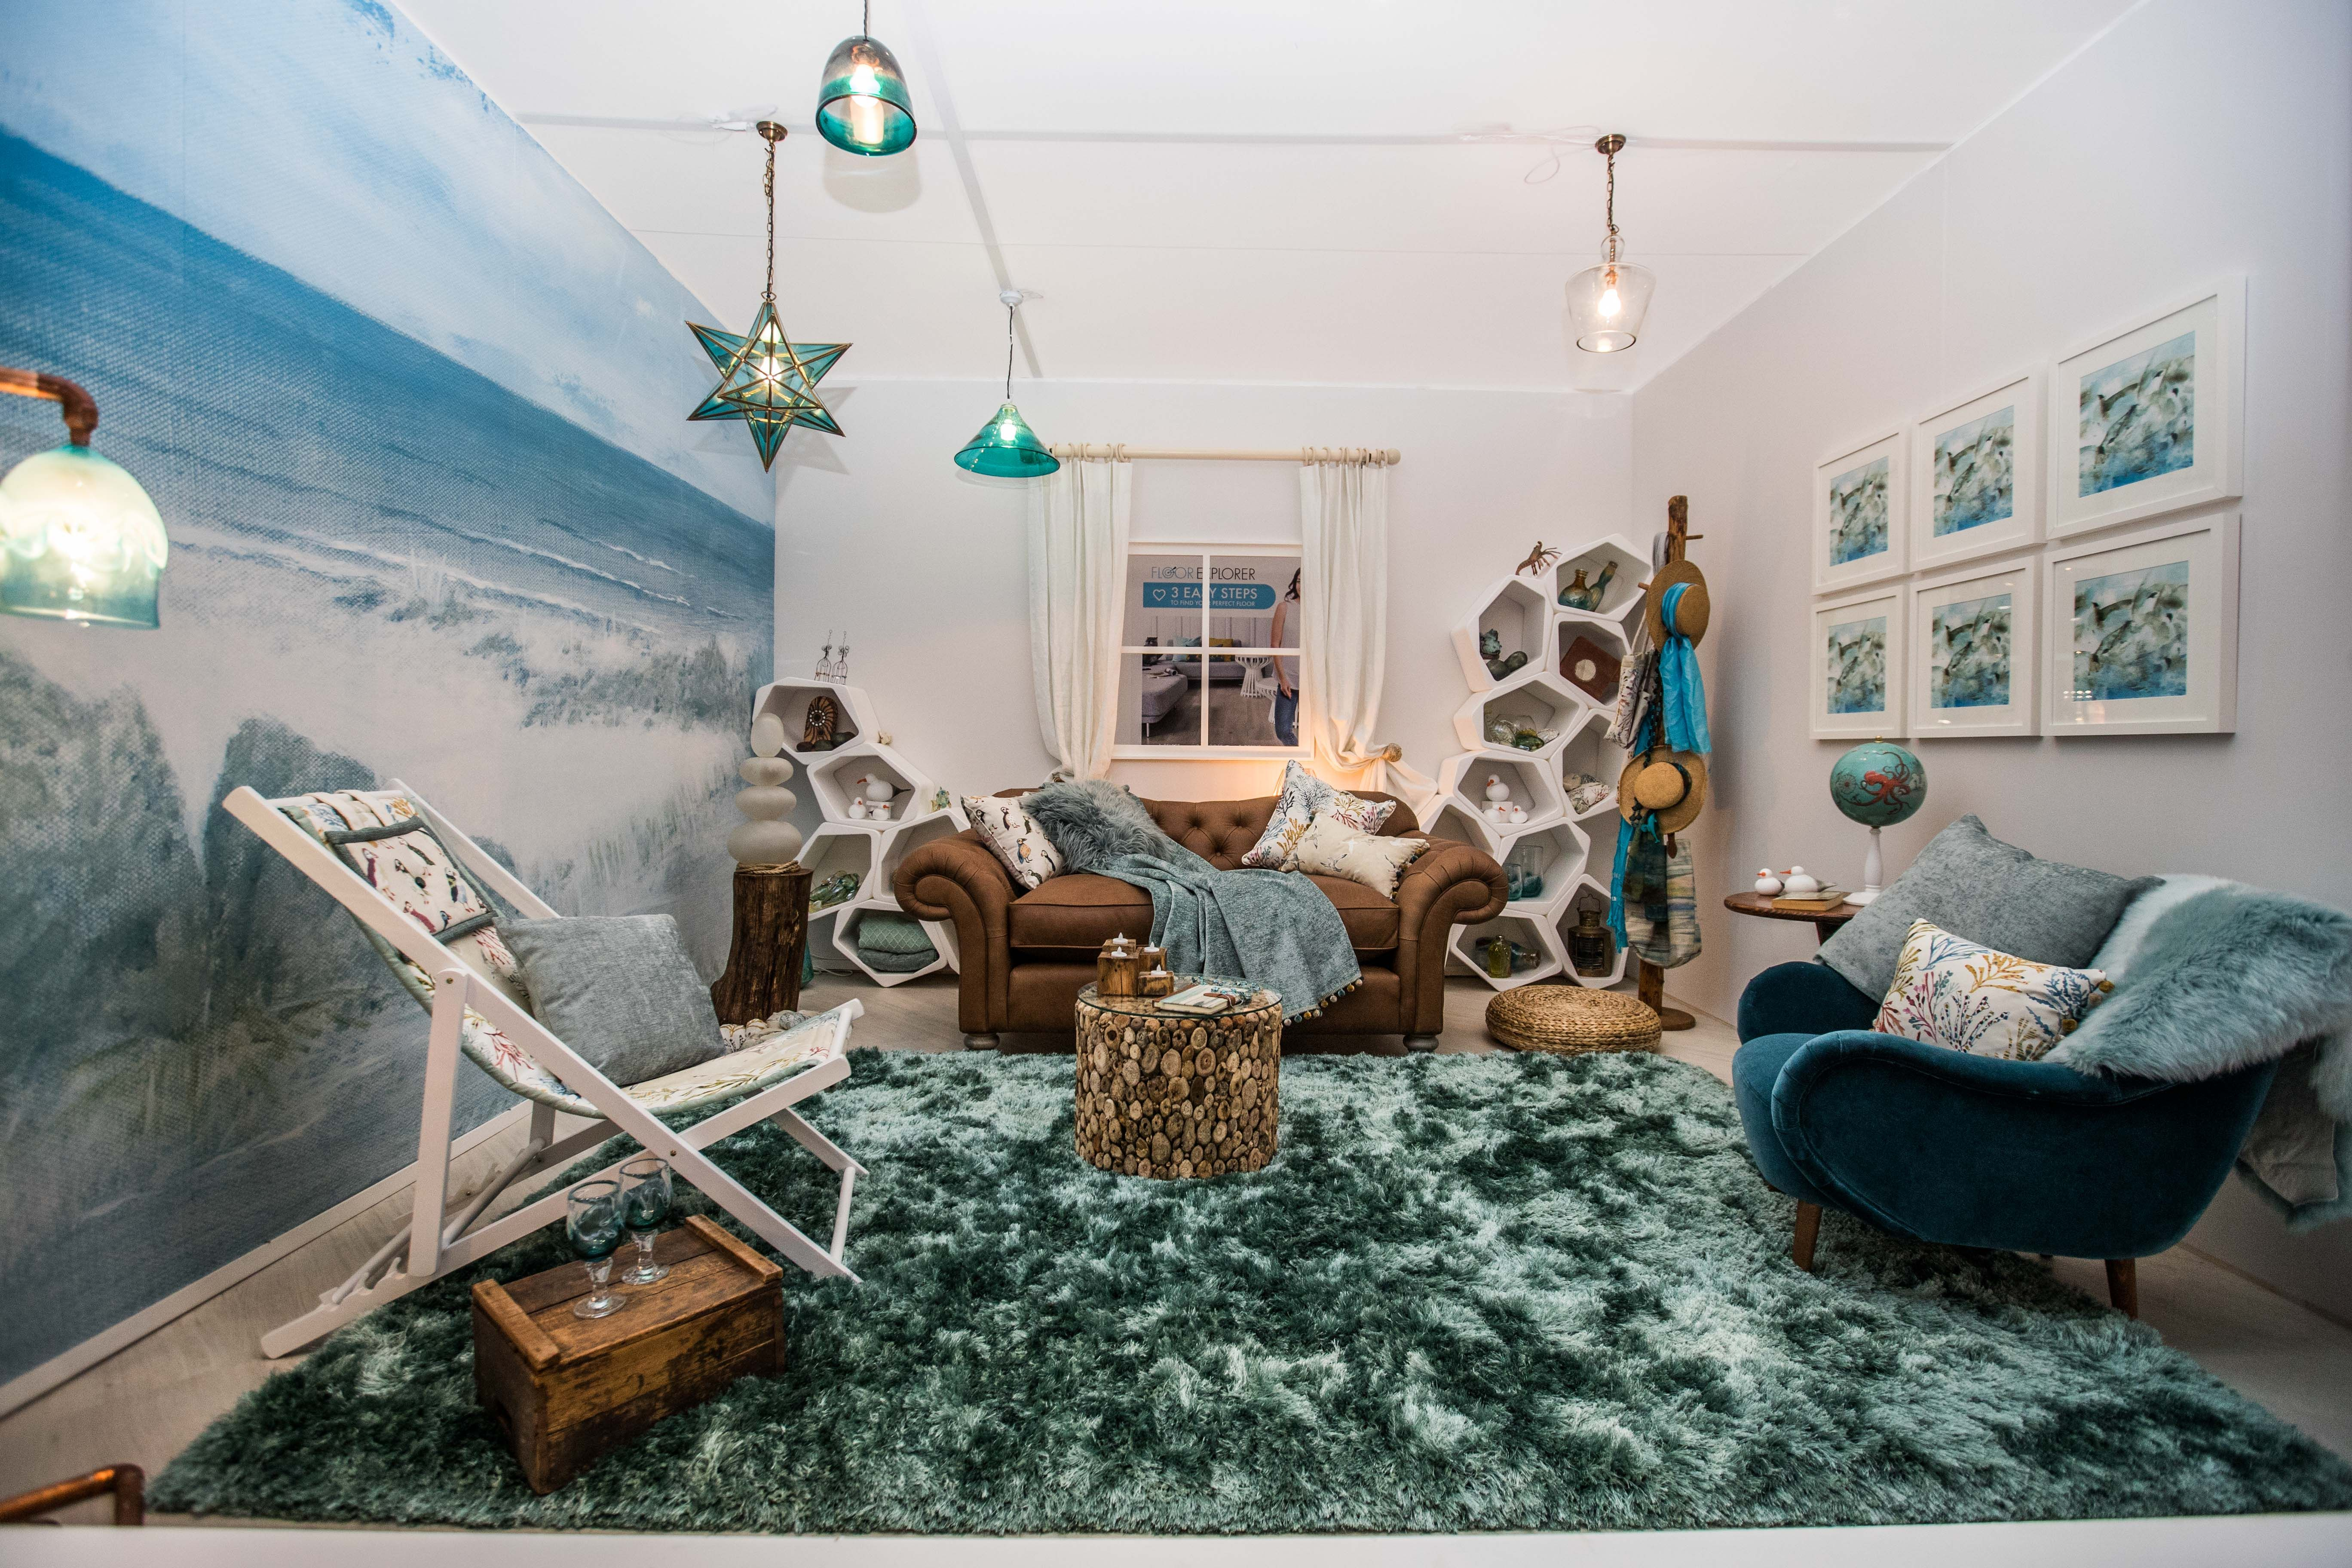 Inspired By The Homes Sea TV Show This Interior Room Set Was Created For